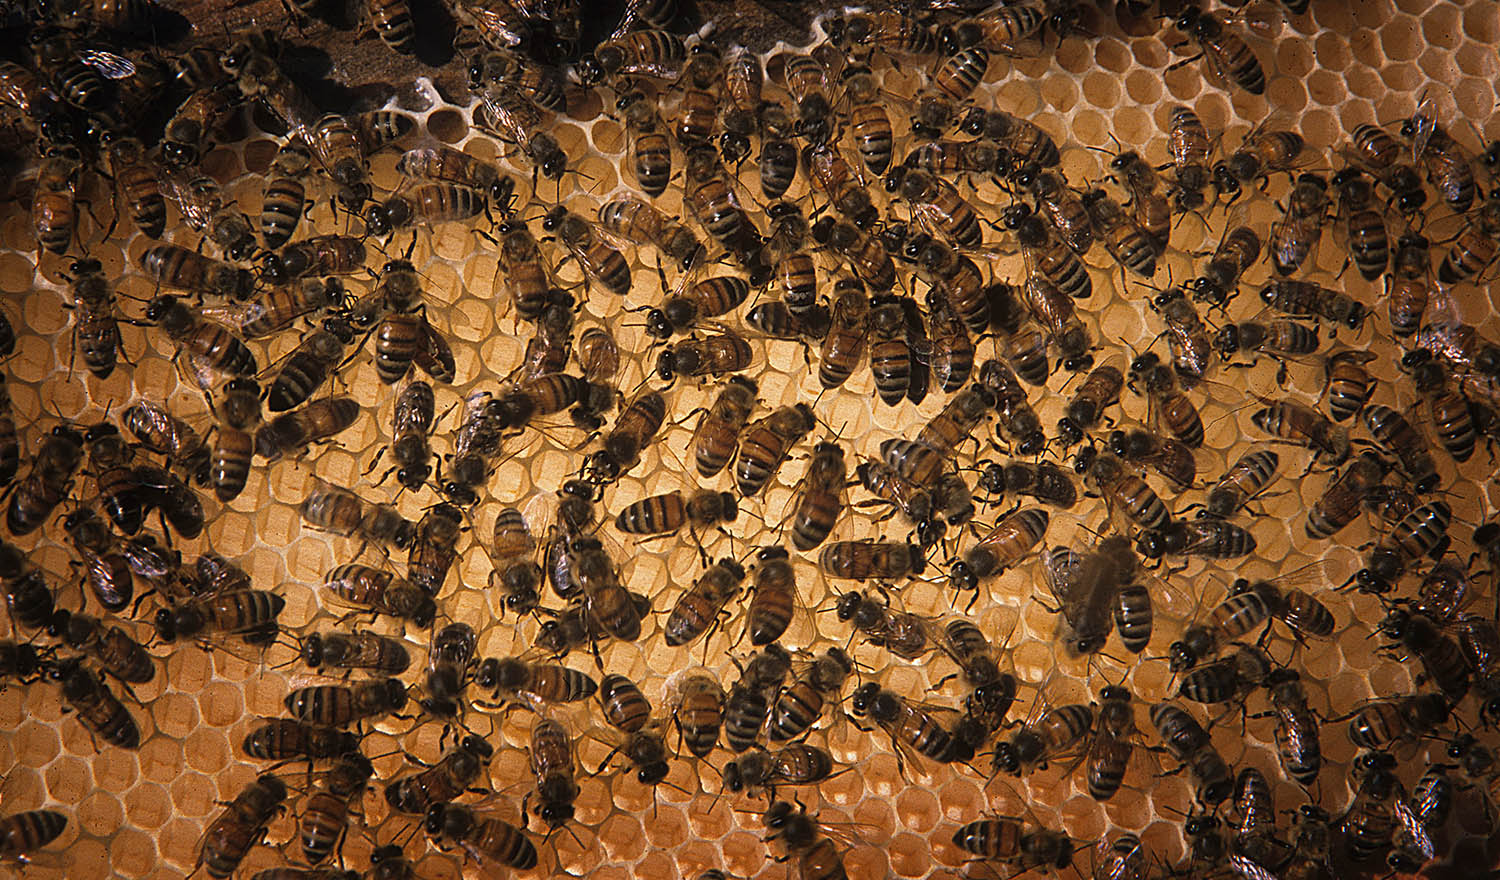 Honey bees working on a backlit honeycomb.